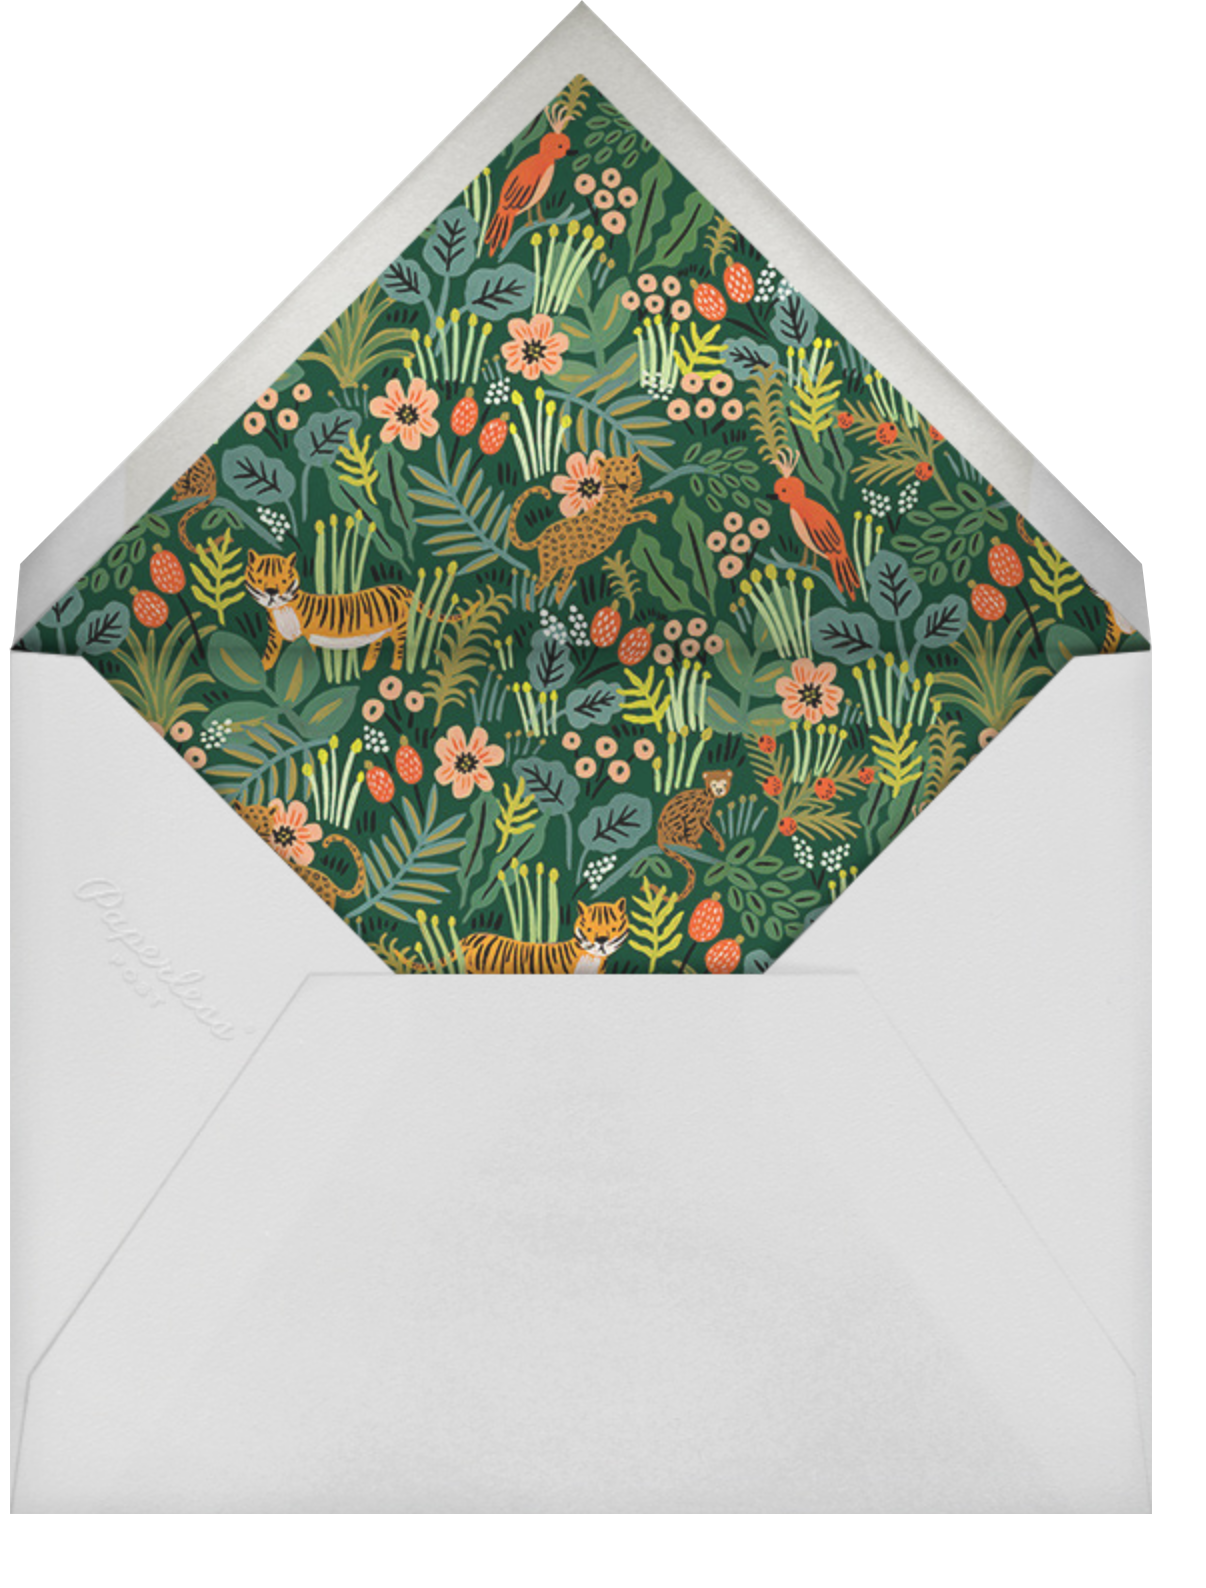 Alligator Birthday - Rifle Paper Co. - Kids' birthday - envelope back